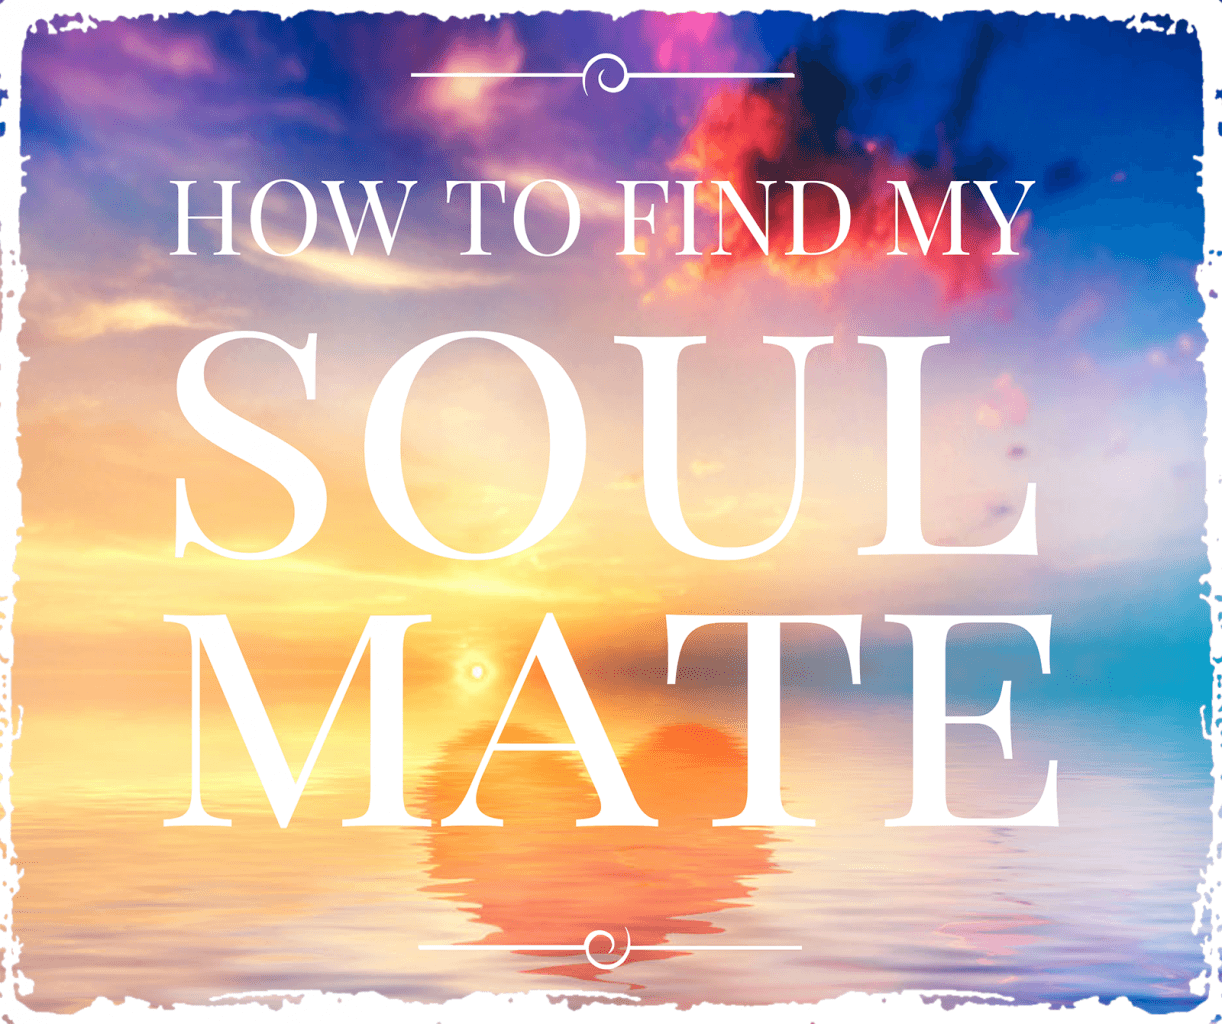 How to find my soul mate banner